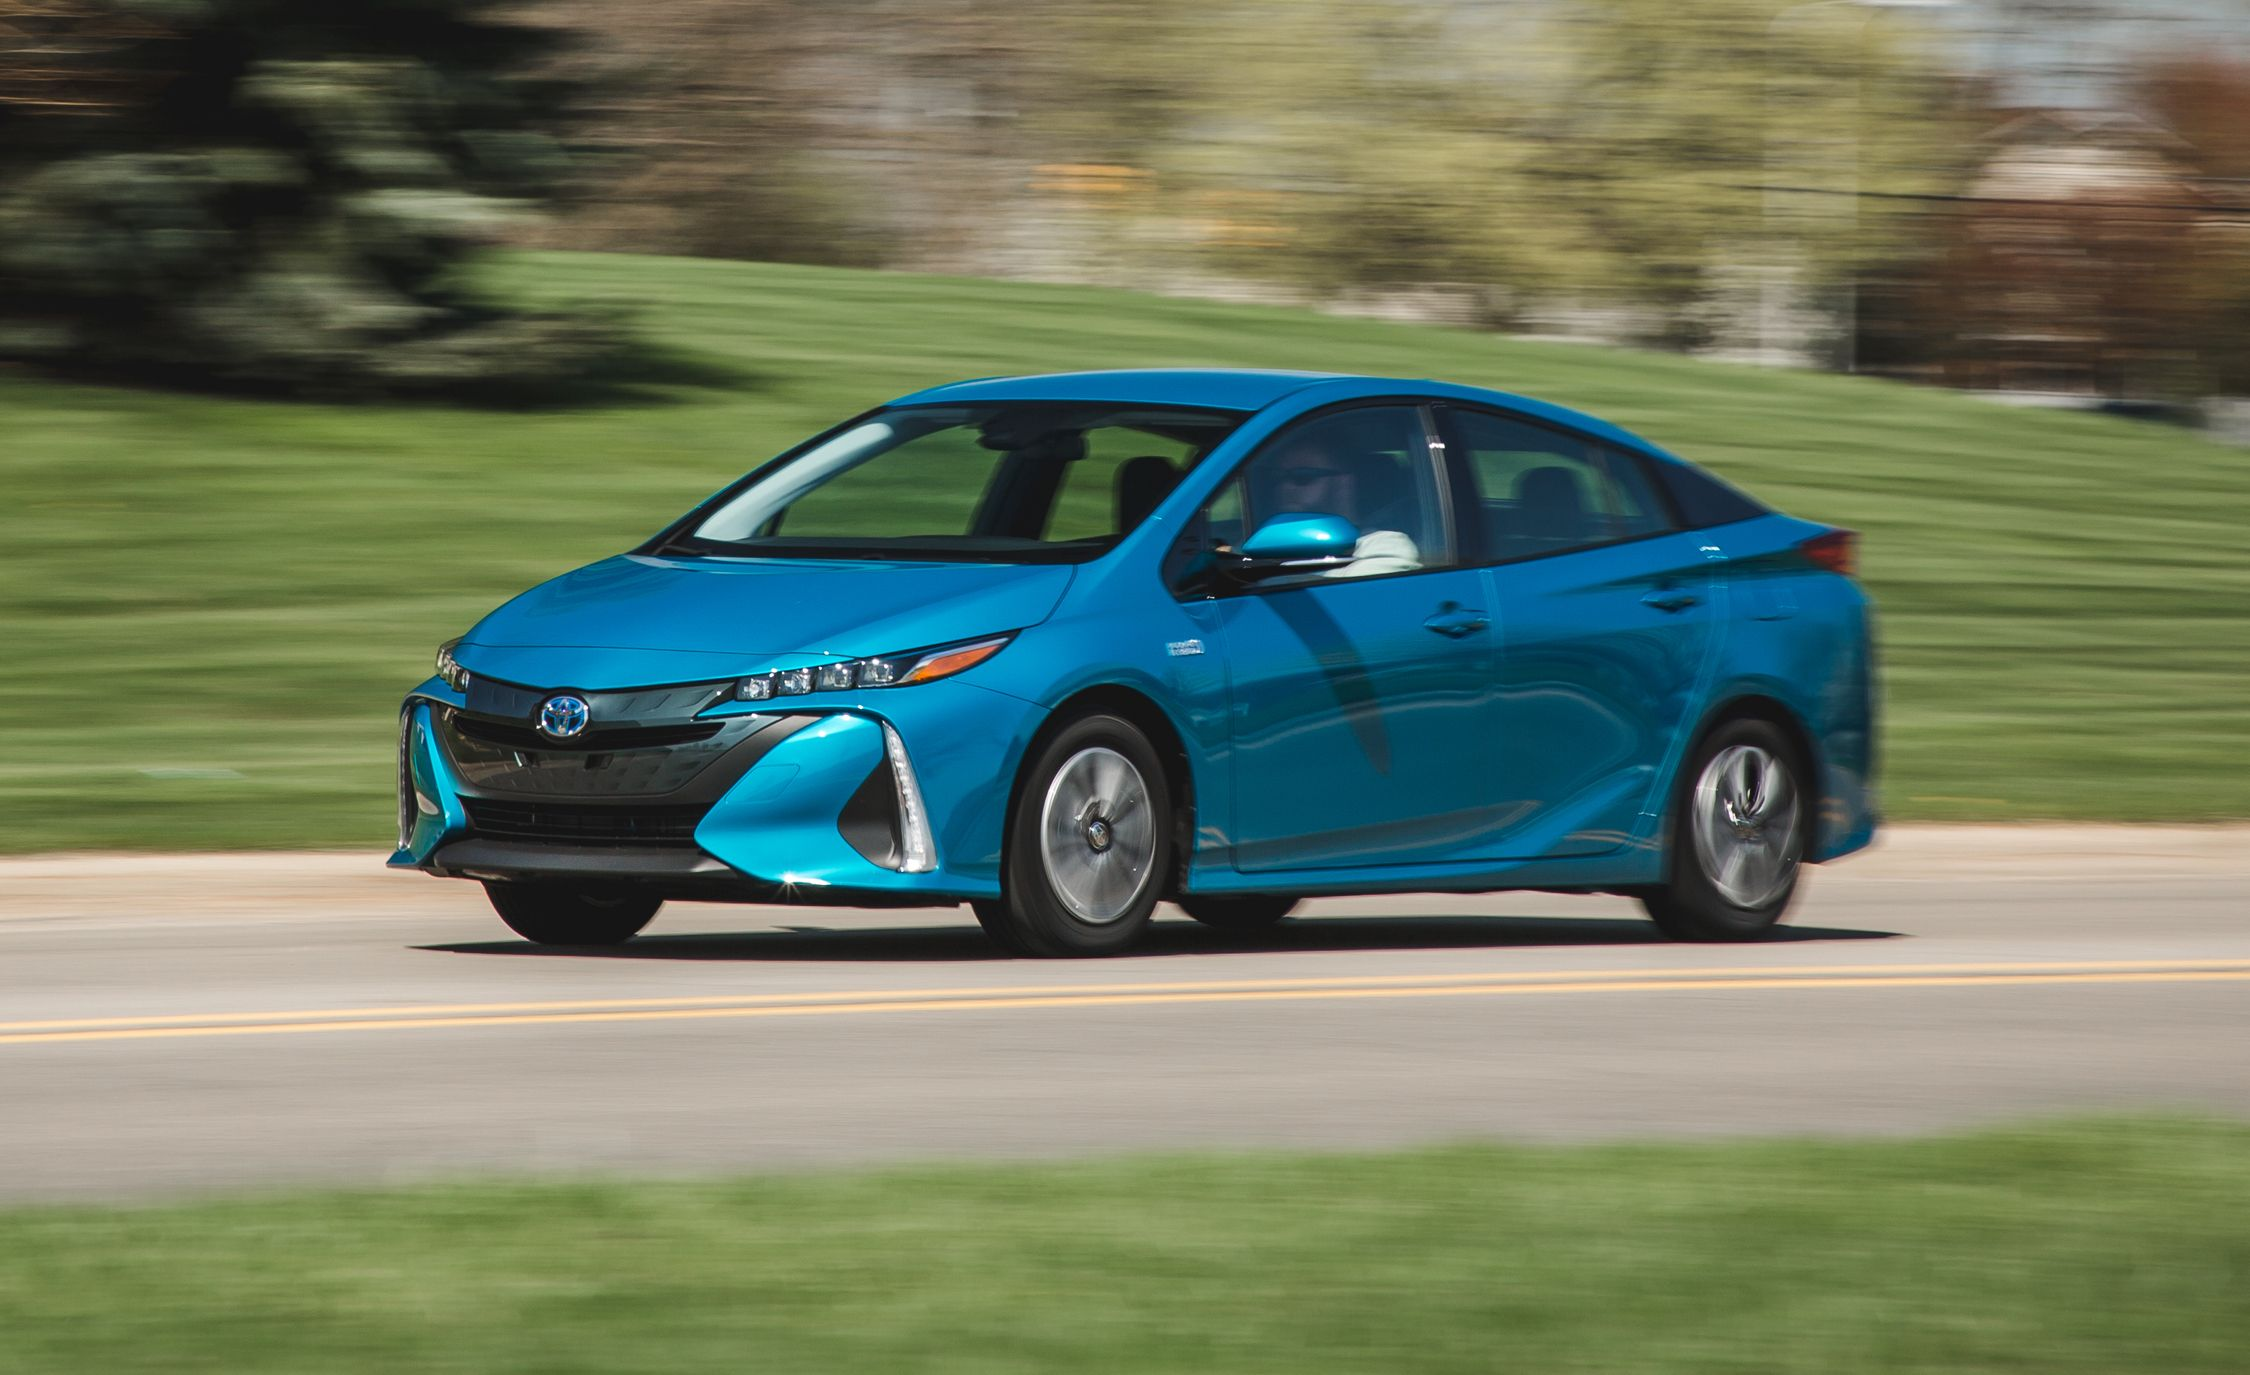 2019 toyota prius prime reviews toyota prius prime price photos and specs car and driver. Black Bedroom Furniture Sets. Home Design Ideas